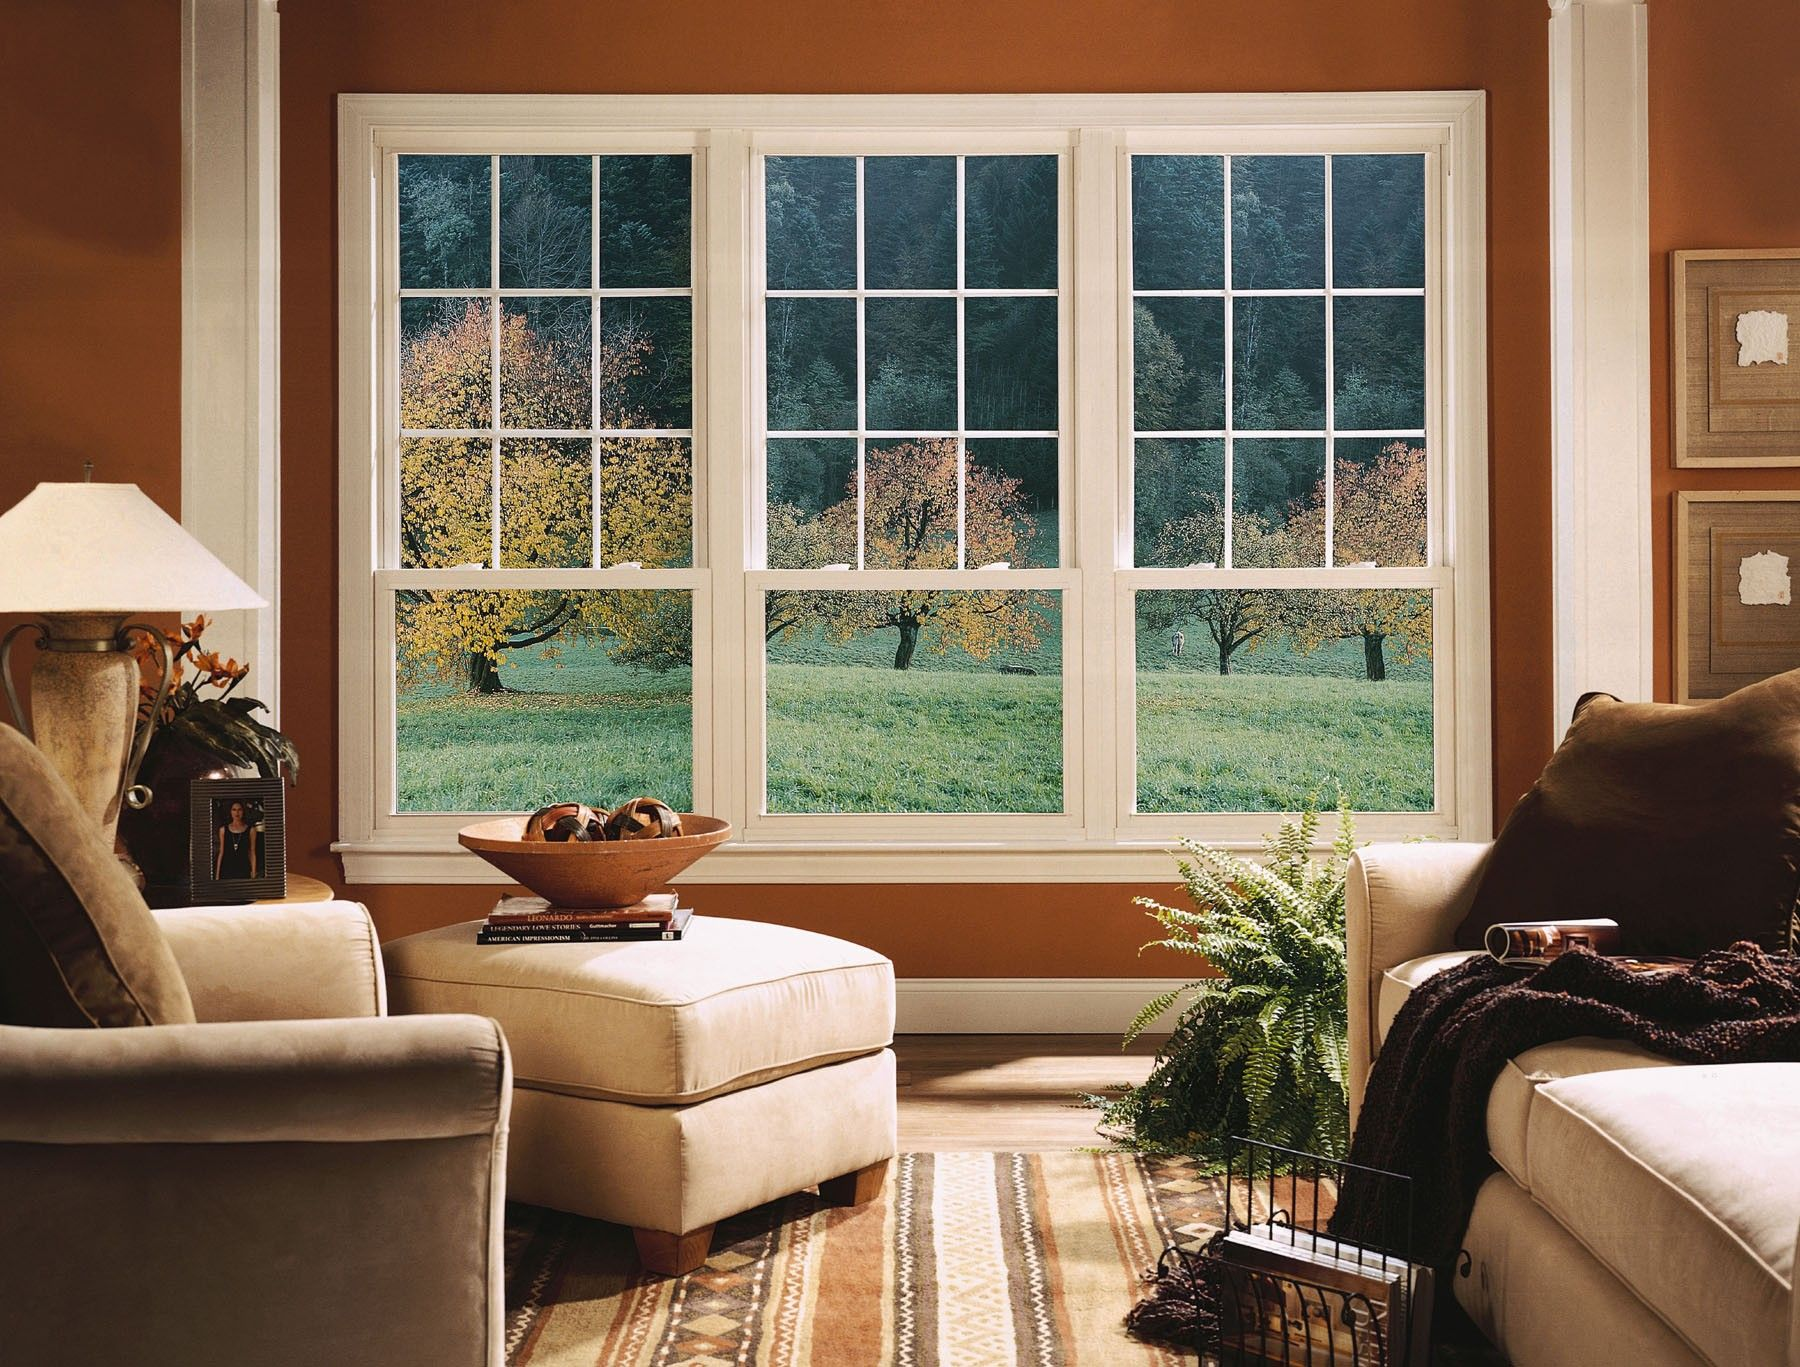 How do I choose the right windows? | Window, Living rooms and Room